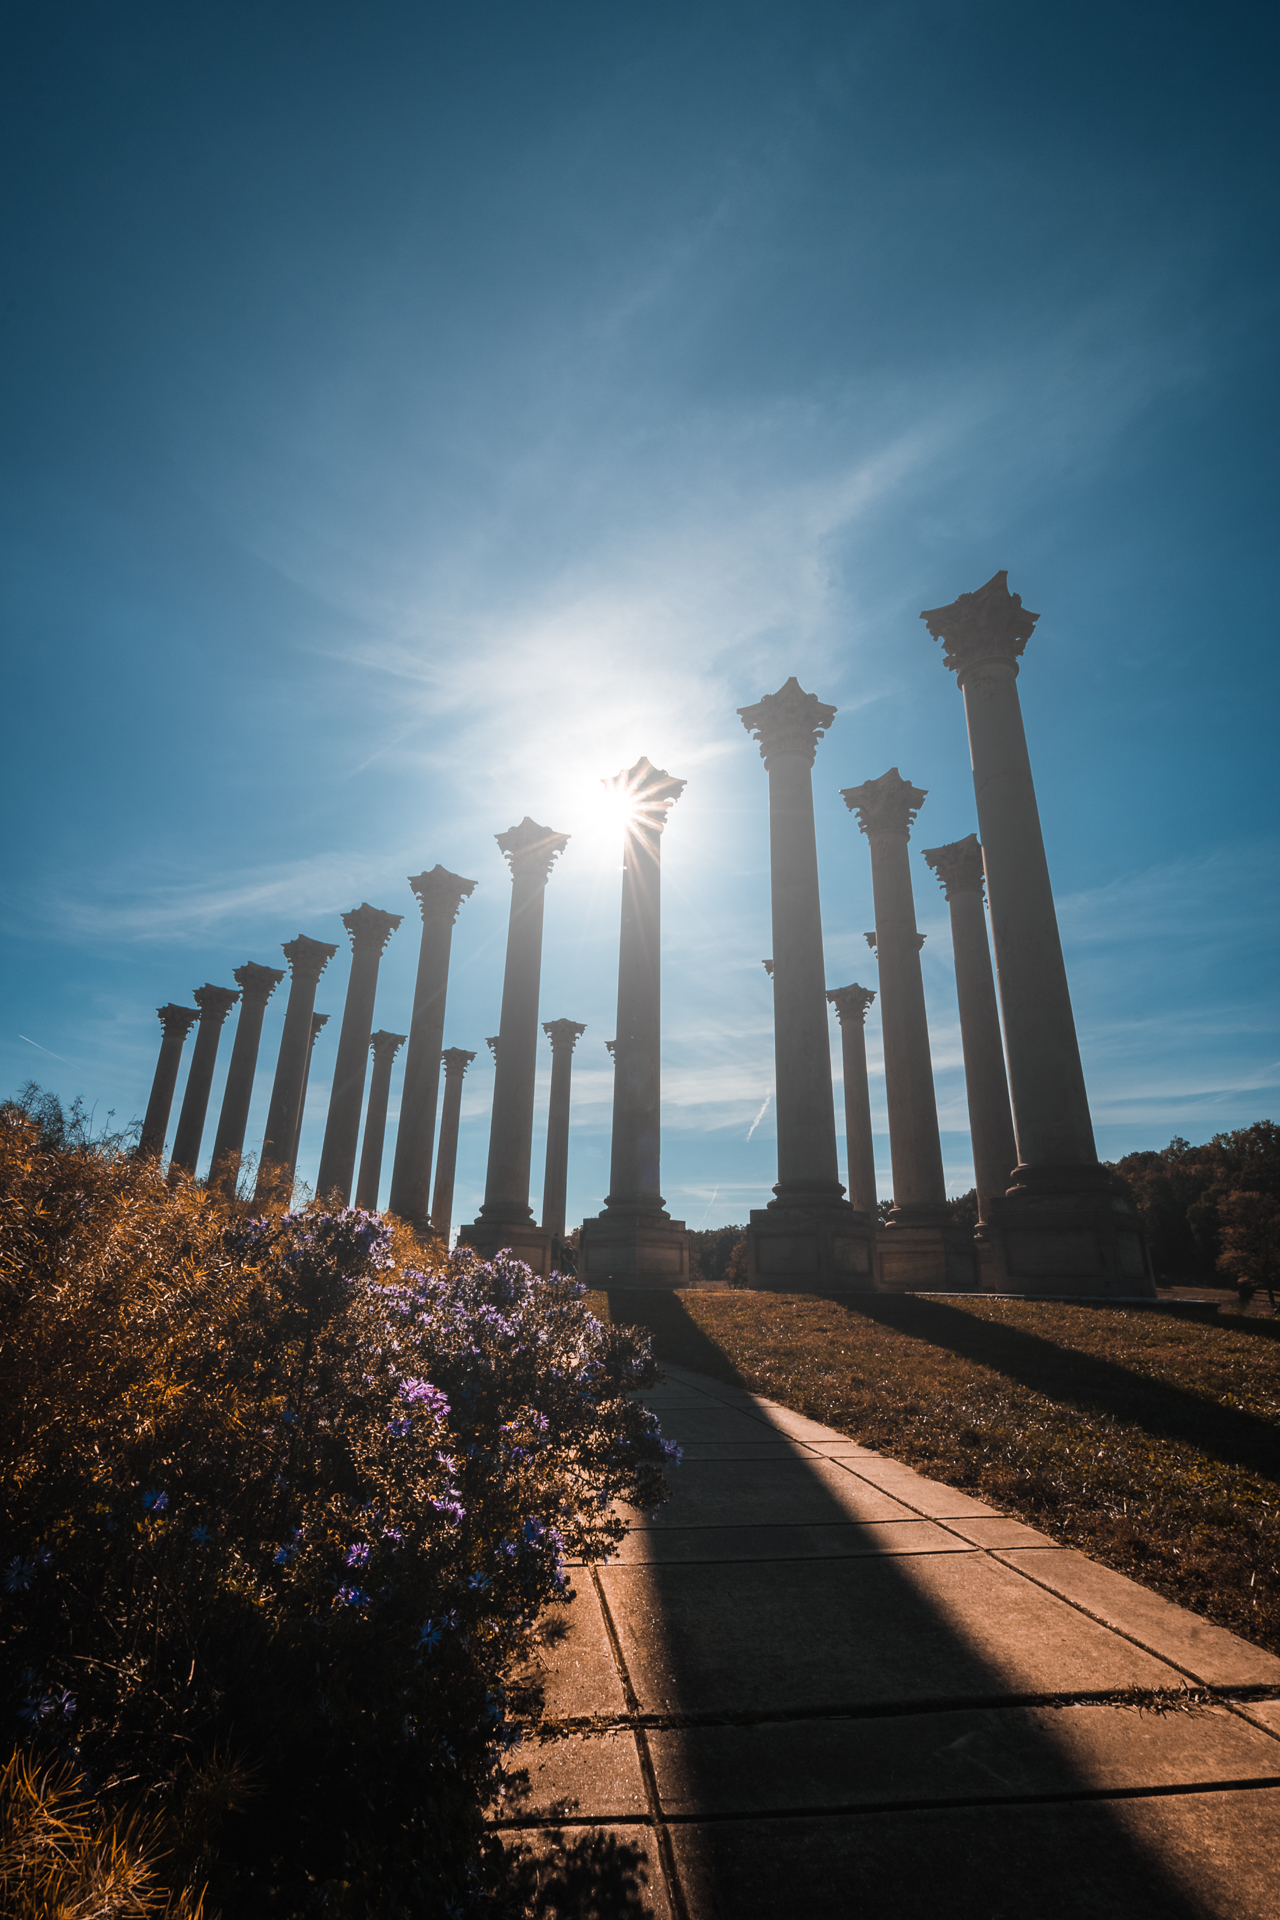 Basking in It – The old capitol columns basking in sunlight at the National Arboretum{&amp;nbsp;}(Image: Zack Lewkowicz)<p></p>